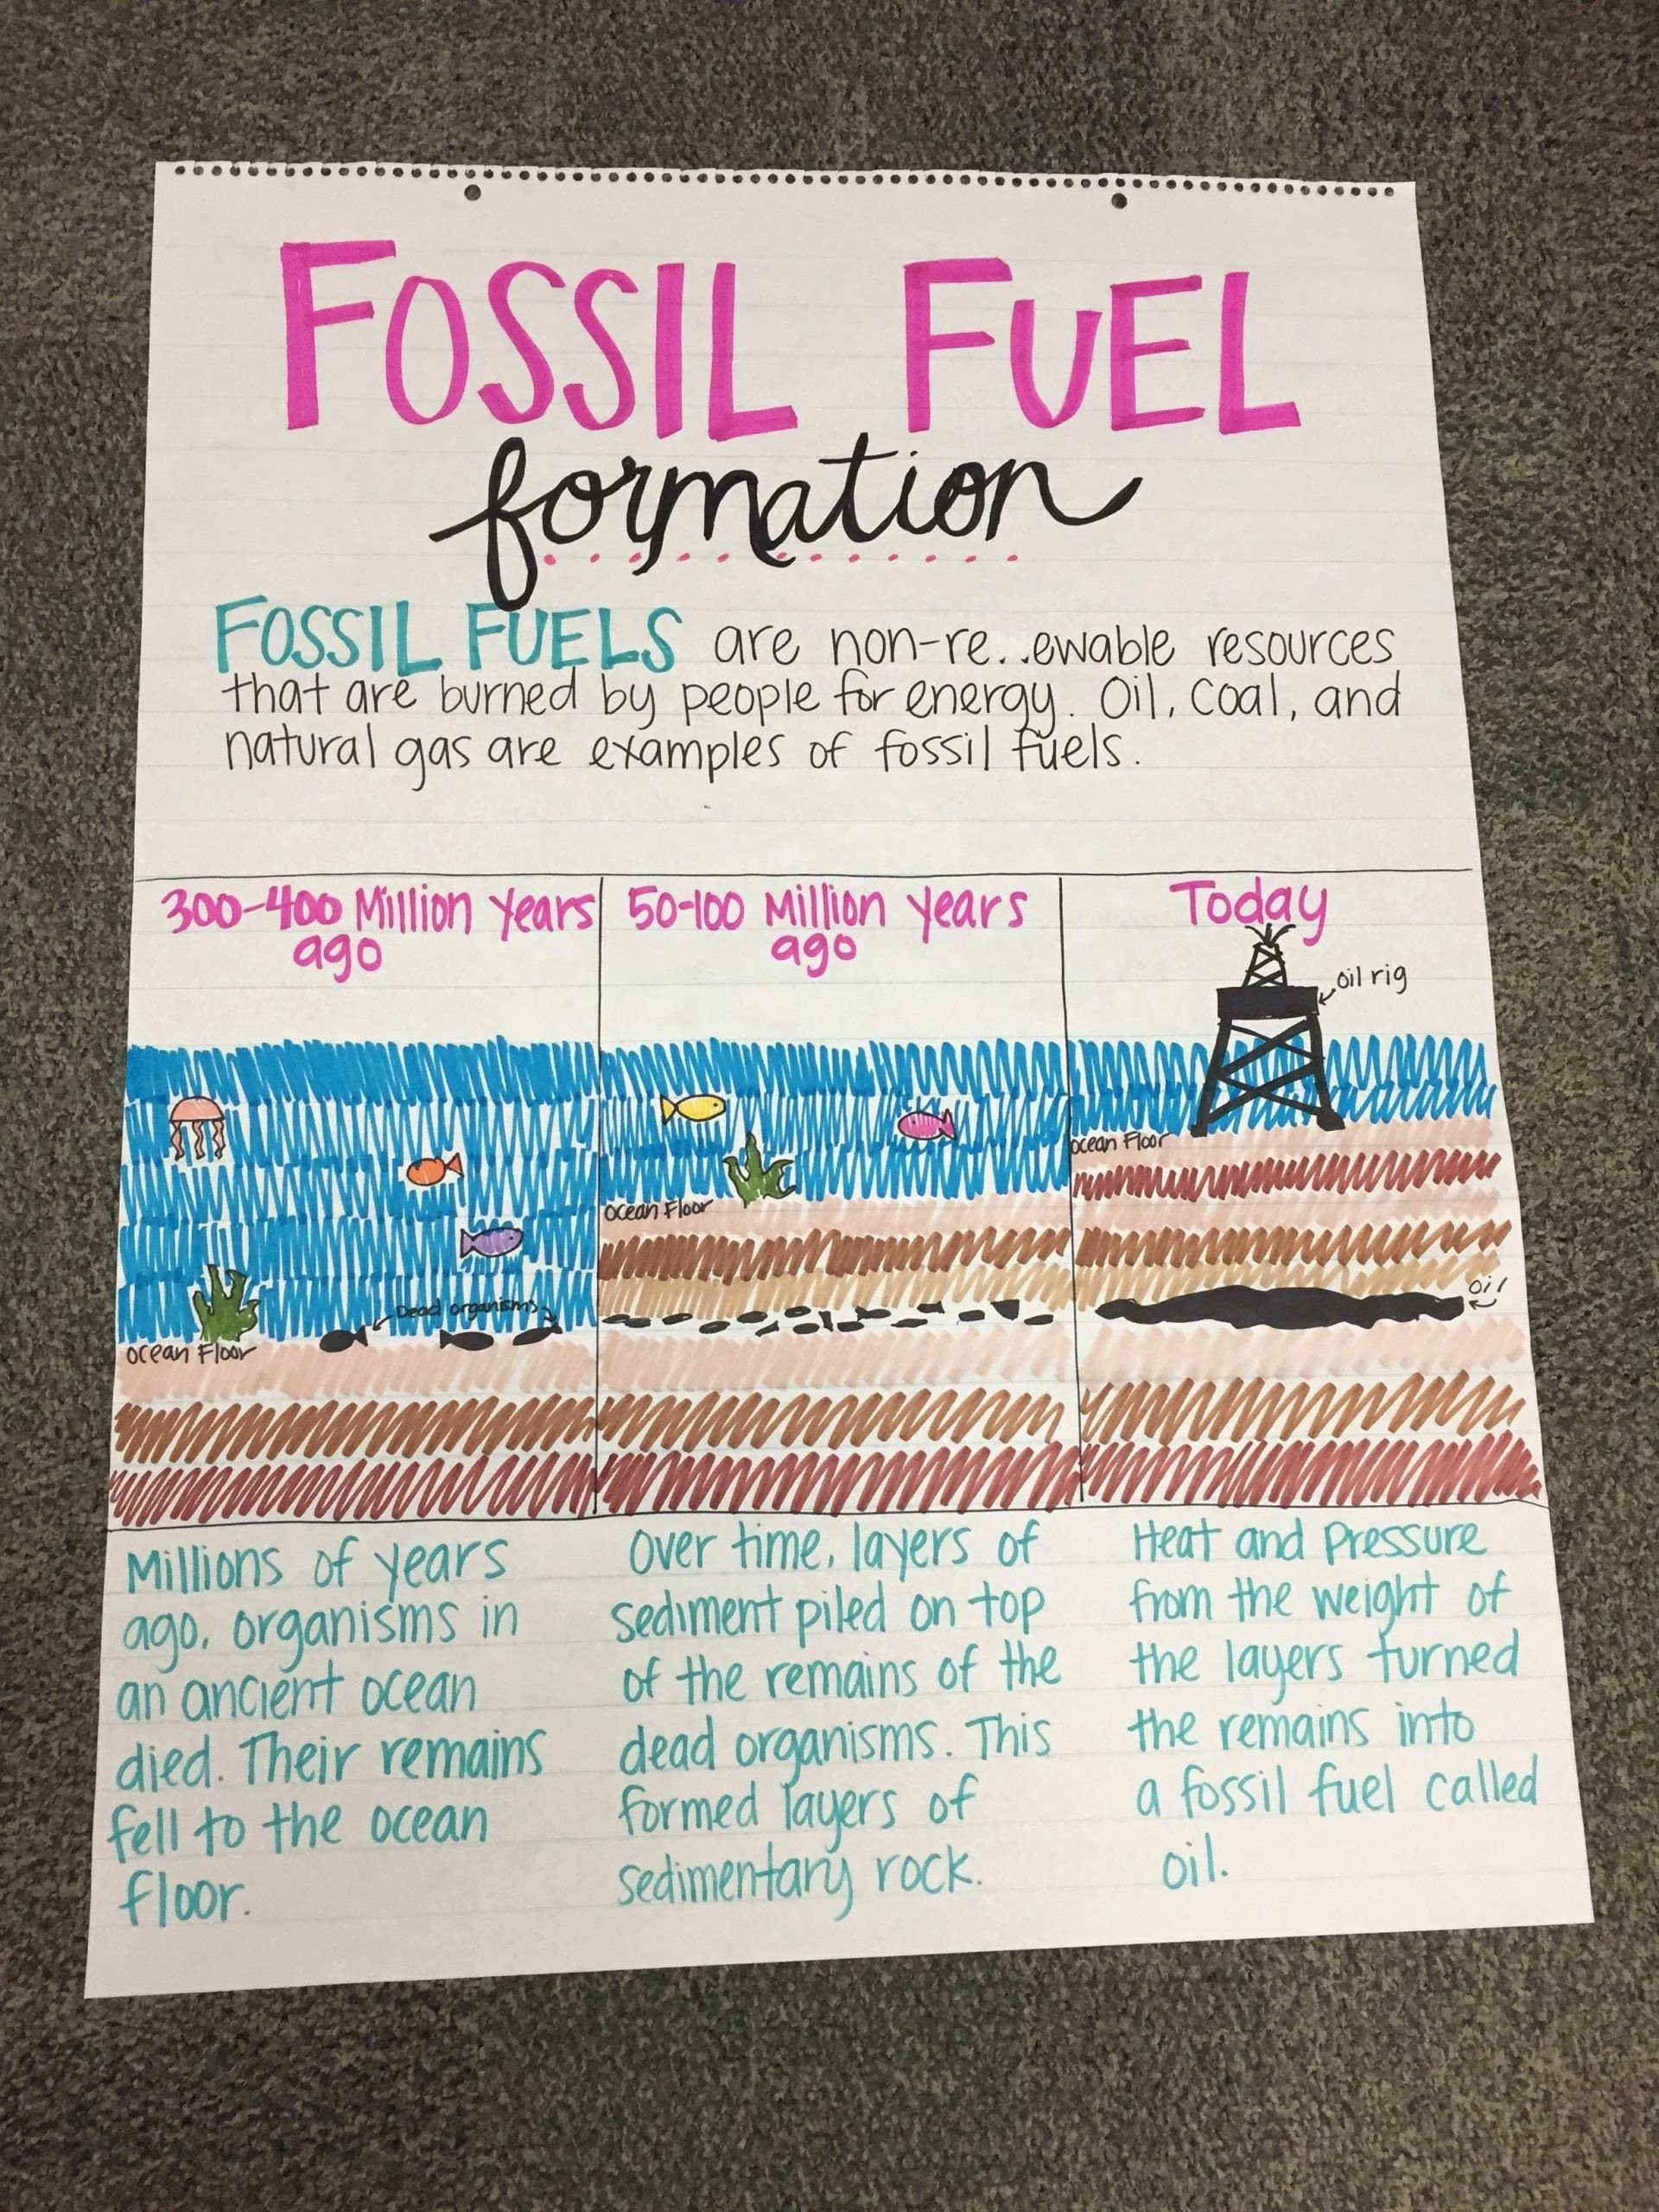 Fossil Fuels Worksheet Middle School Best Of Fossil Fuels Worksheet Middle School Fossil Fuel formation